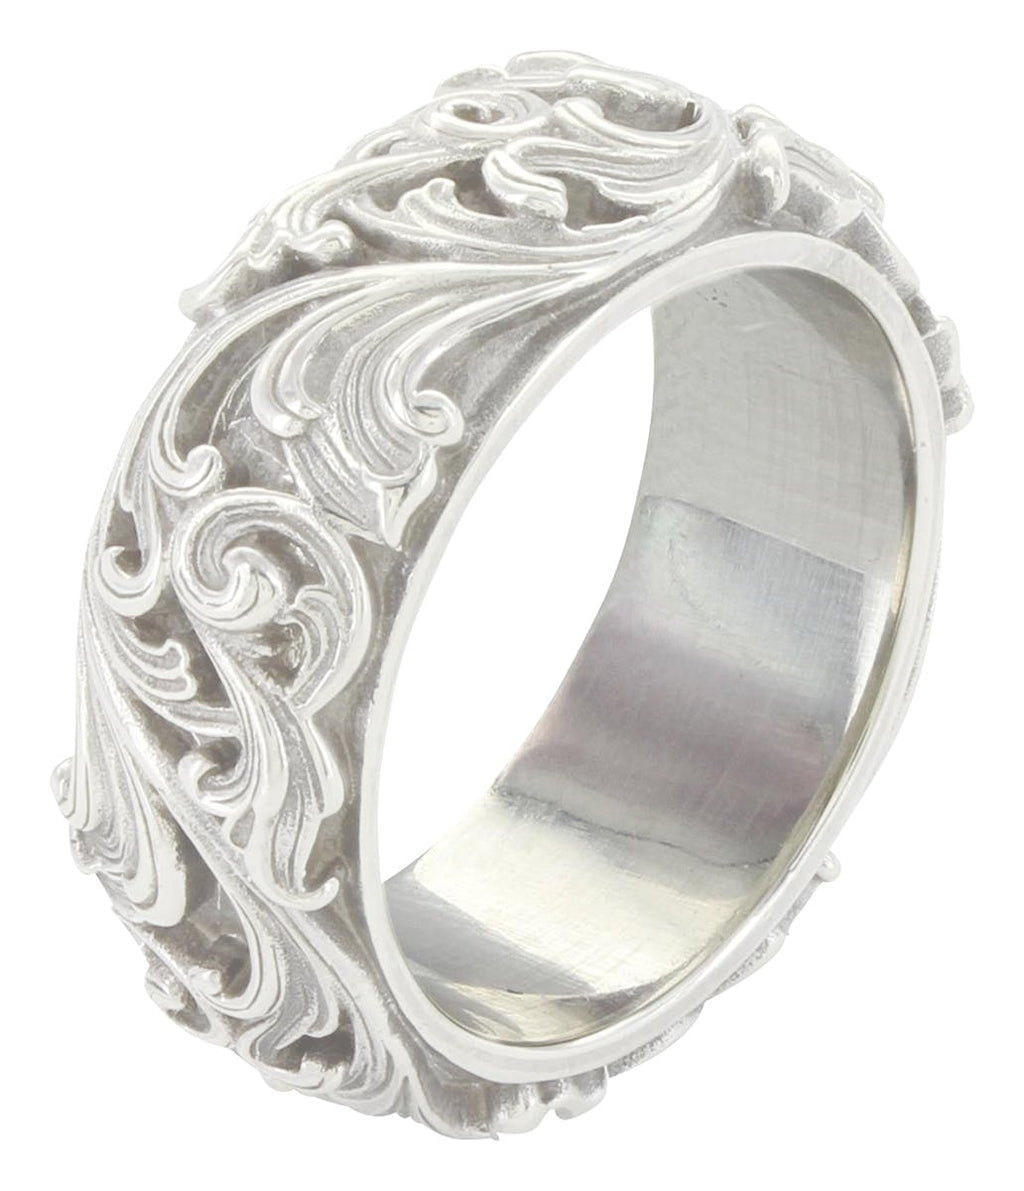 Size 11 Sterling Lane Forever and Ever Wide Band SLRG047